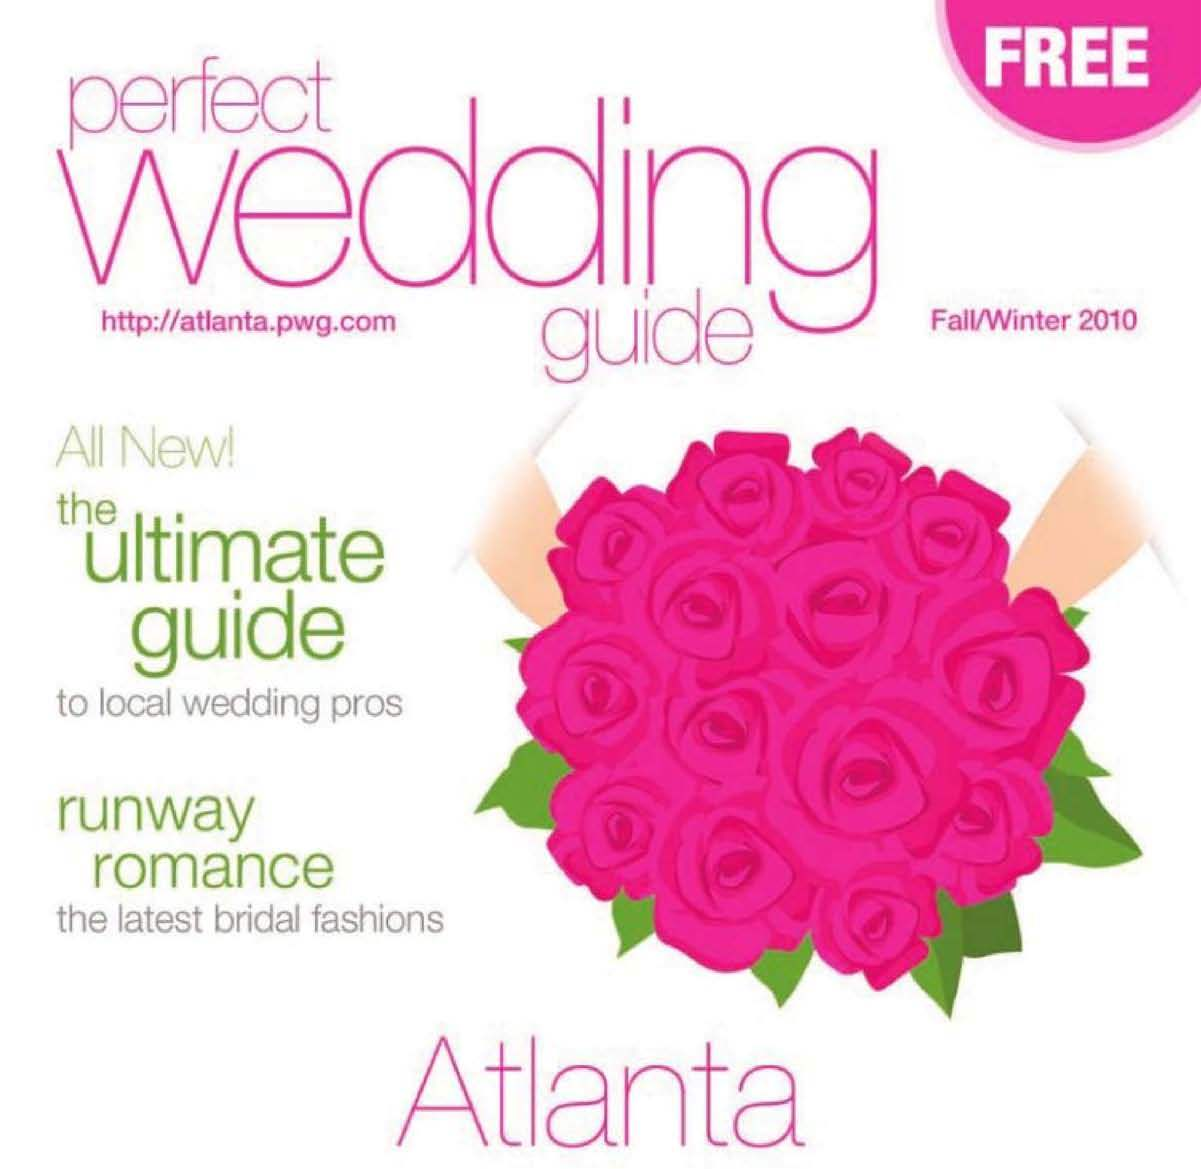 ciao bella weddings featured the perfect wedding guide